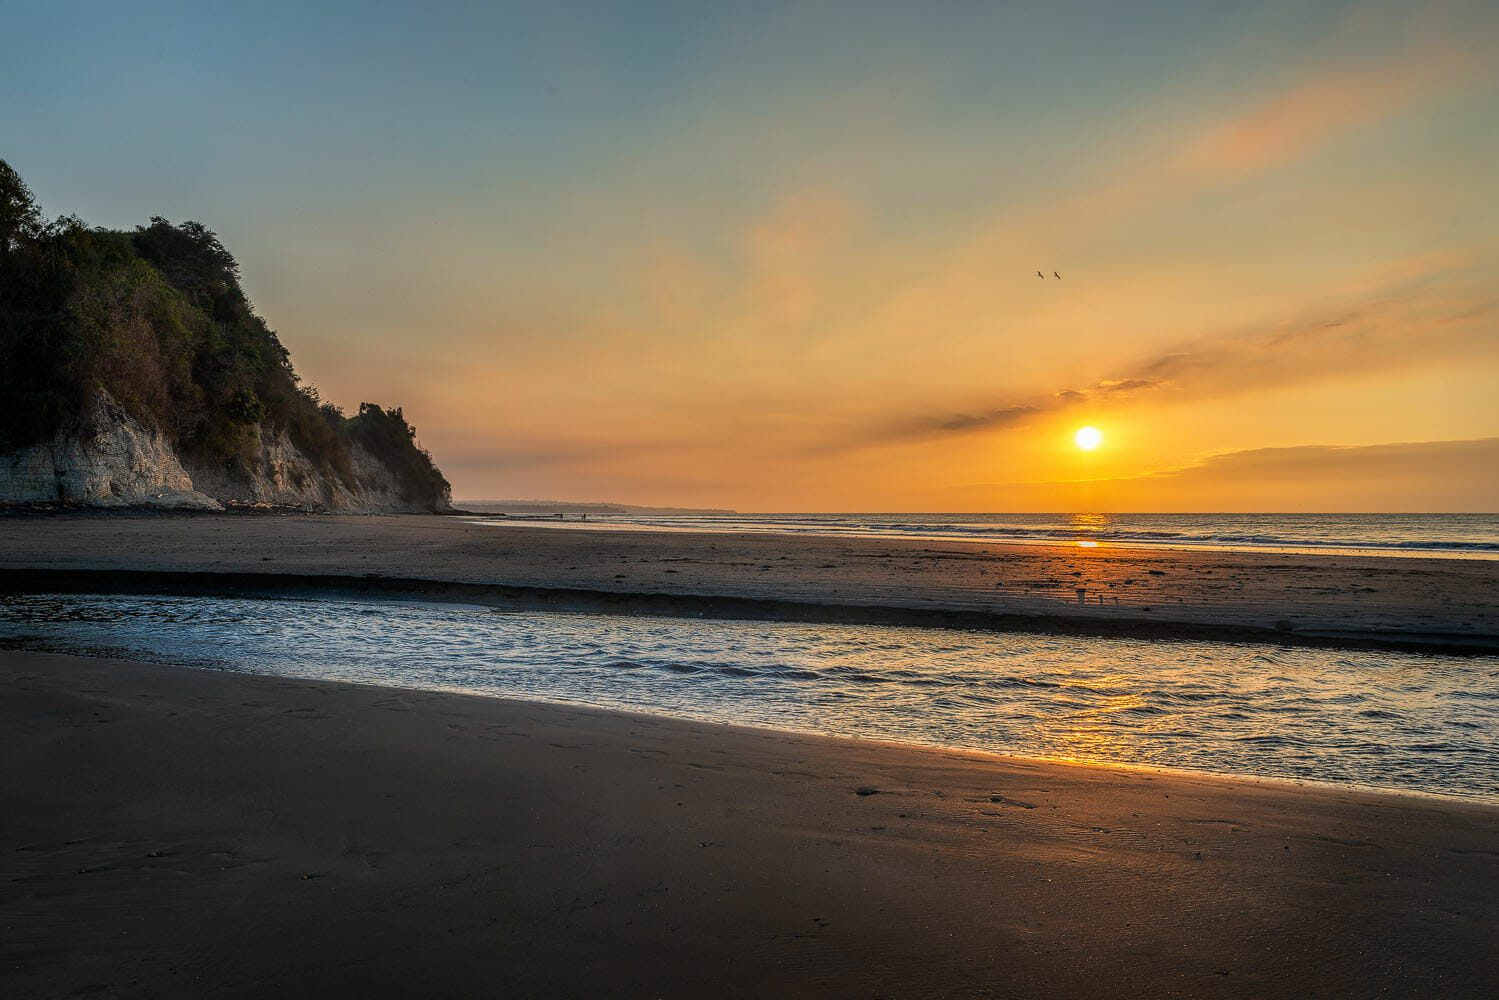 Sunset at Tonchigüe beach on the northeast of the Pacific coast of Ecuador